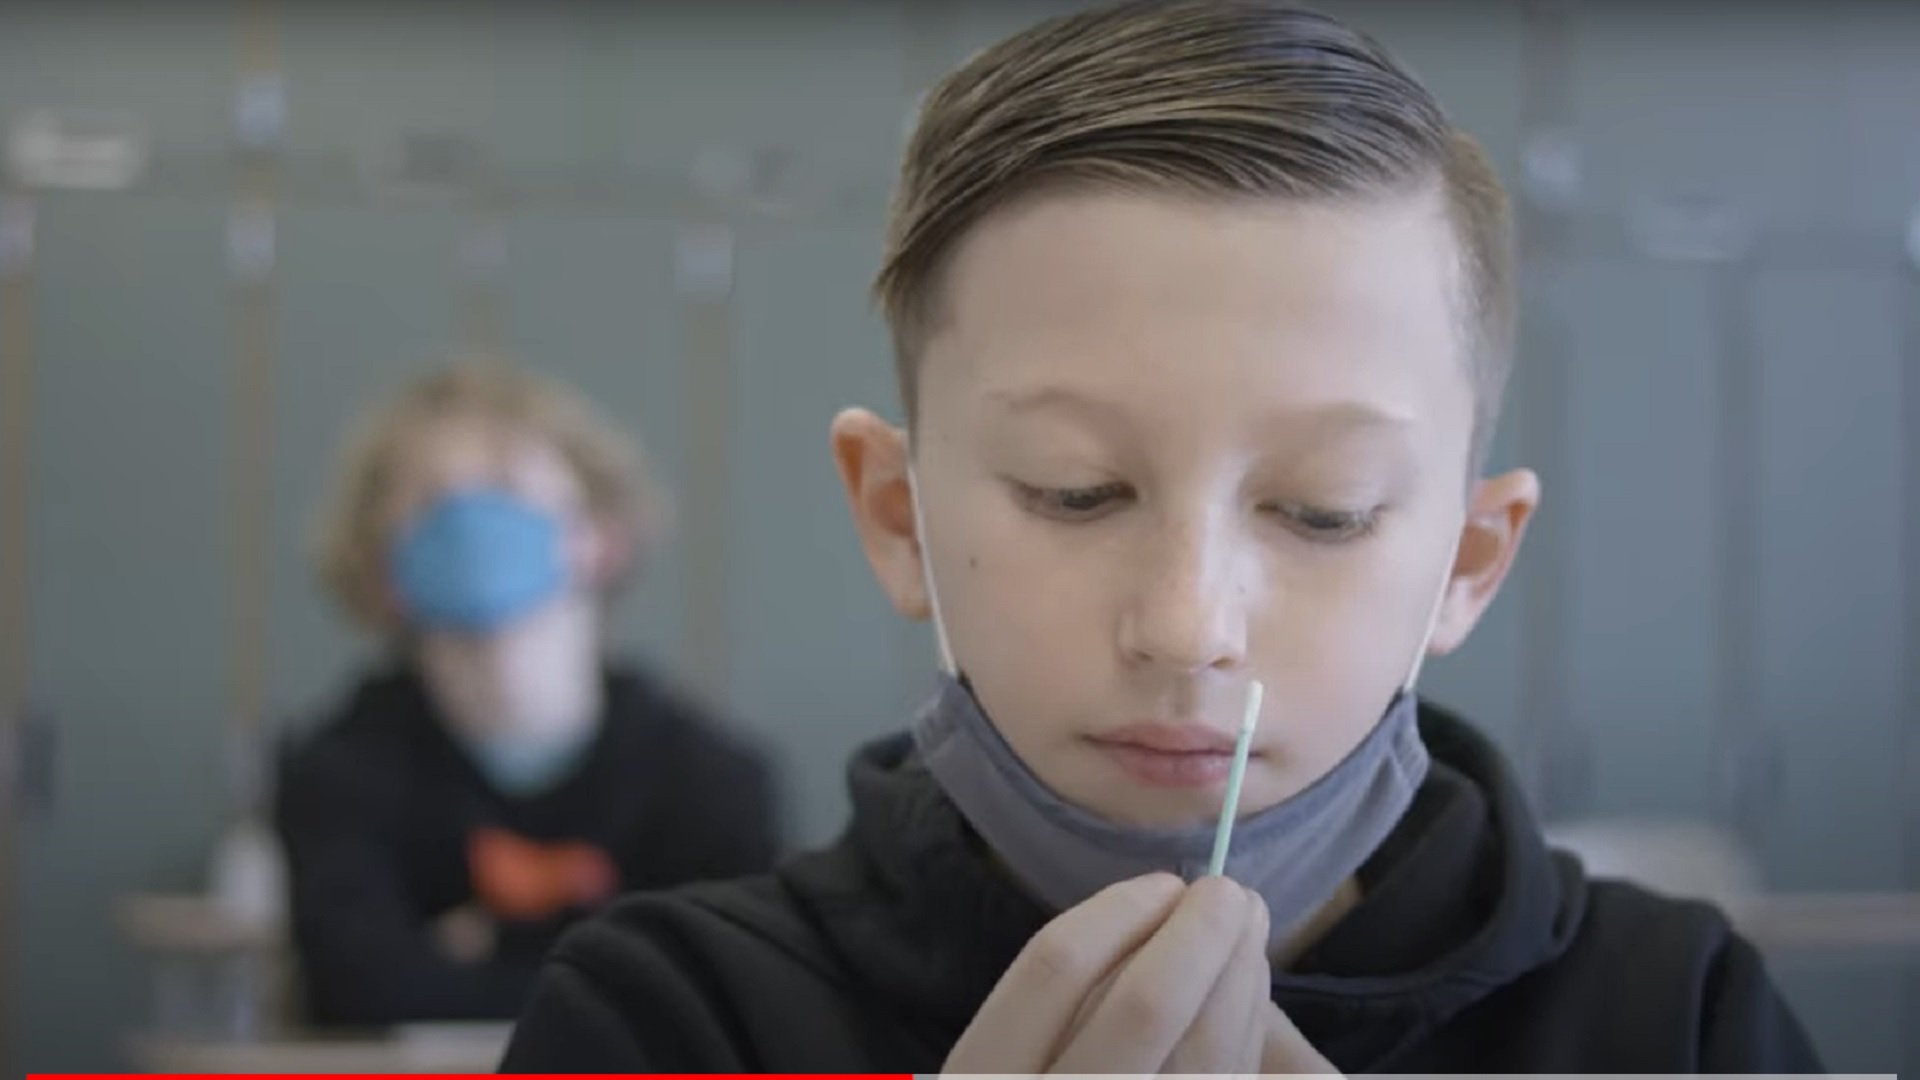 """An elementary school student prepares to self-administer a COVID-19 test in a frame from a promotional video by Ginkgo Bioworks, which distributes """"pooled testing"""" systems to schools around the country."""